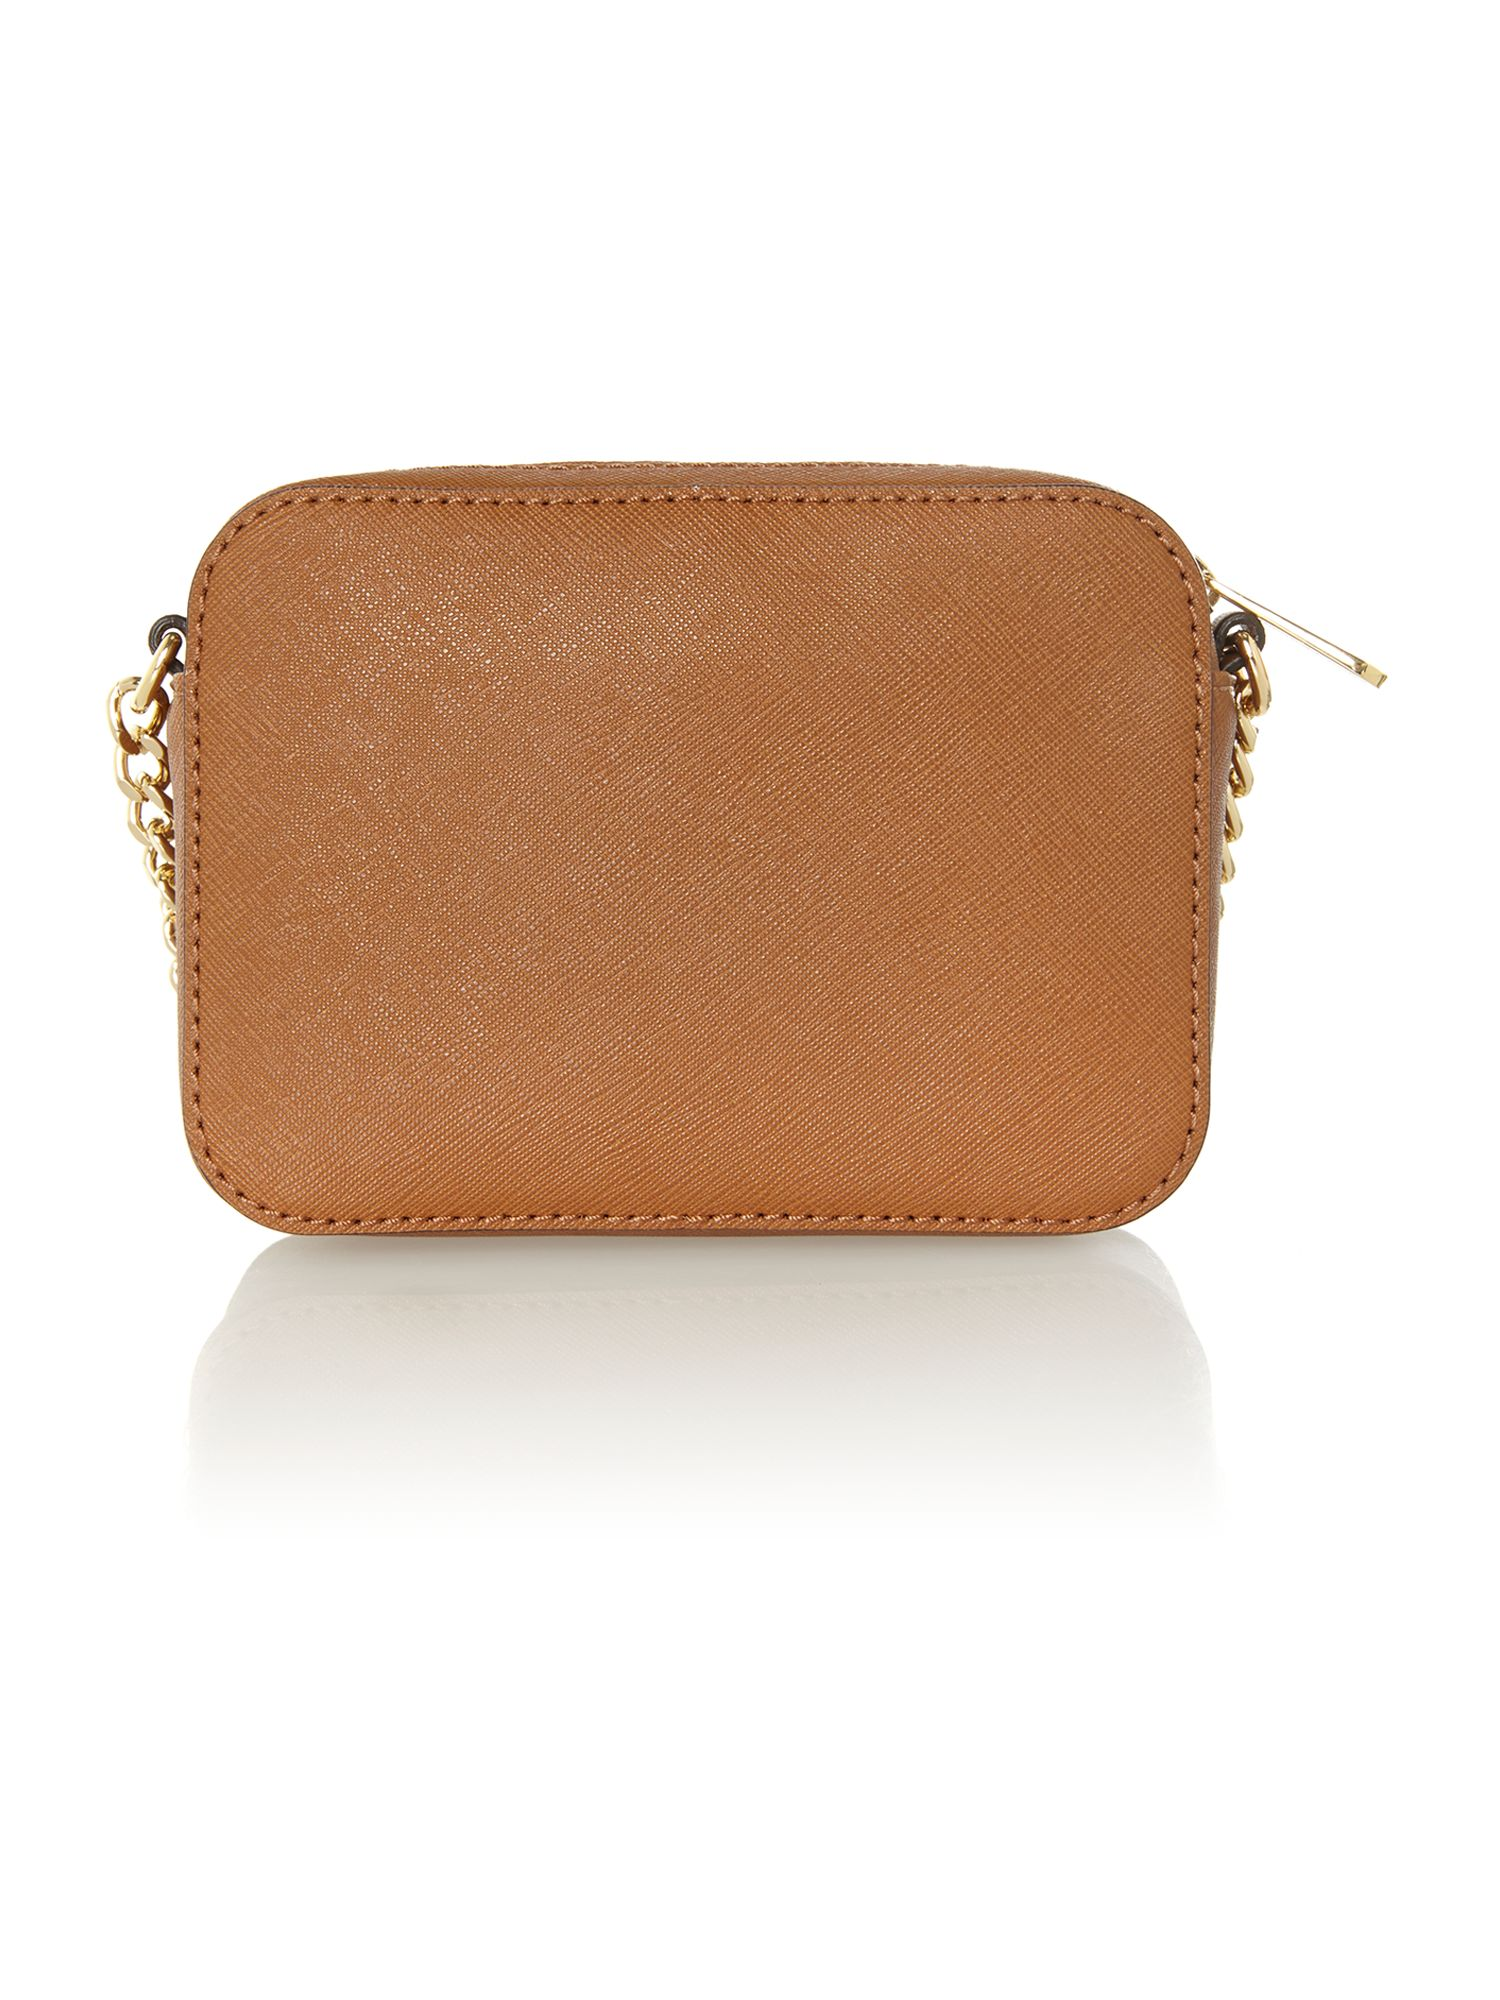 Jet set travel tan small chain cross body